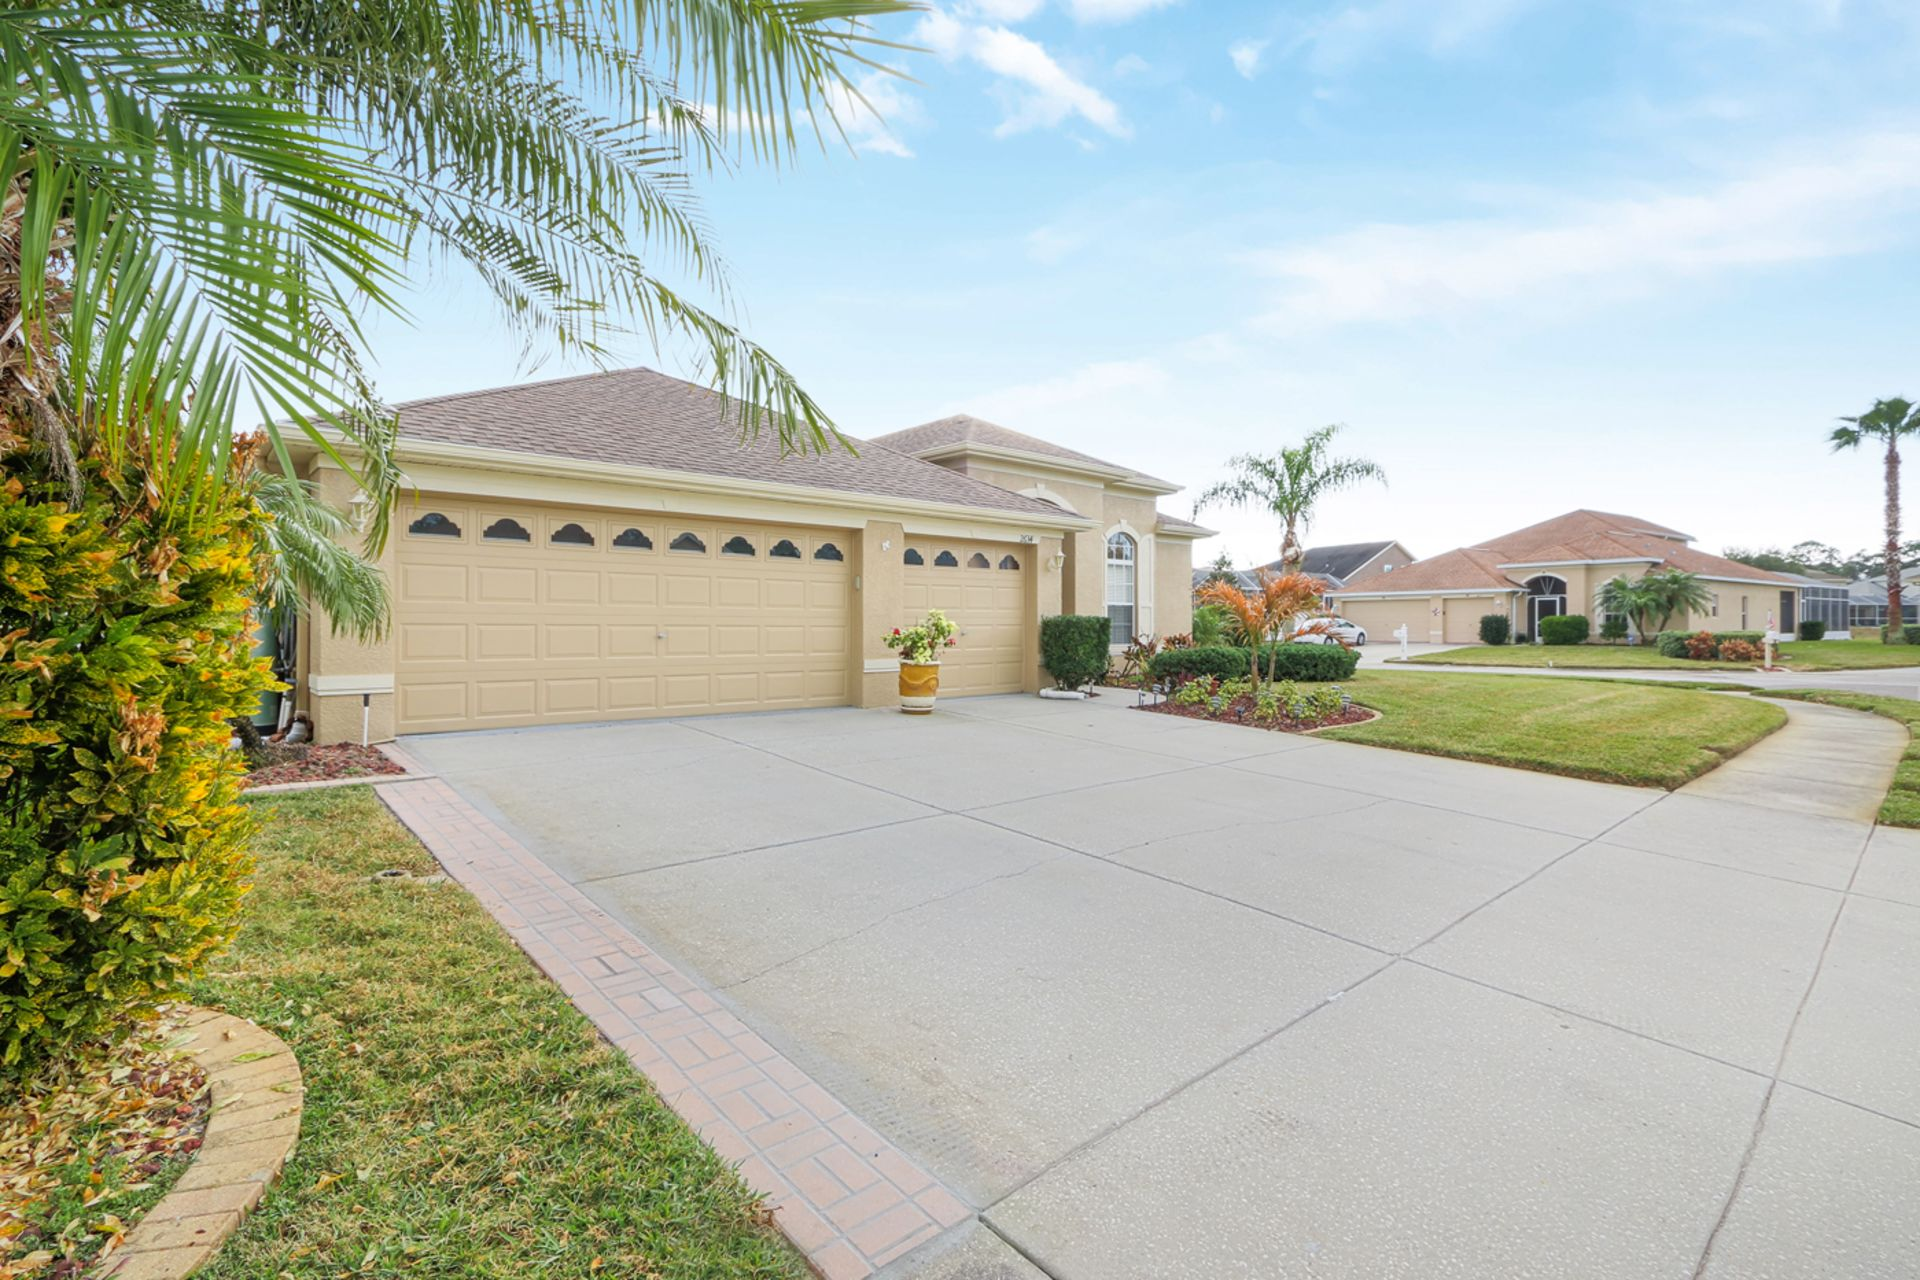 Key Vista Home For Sale in Holiday, FL